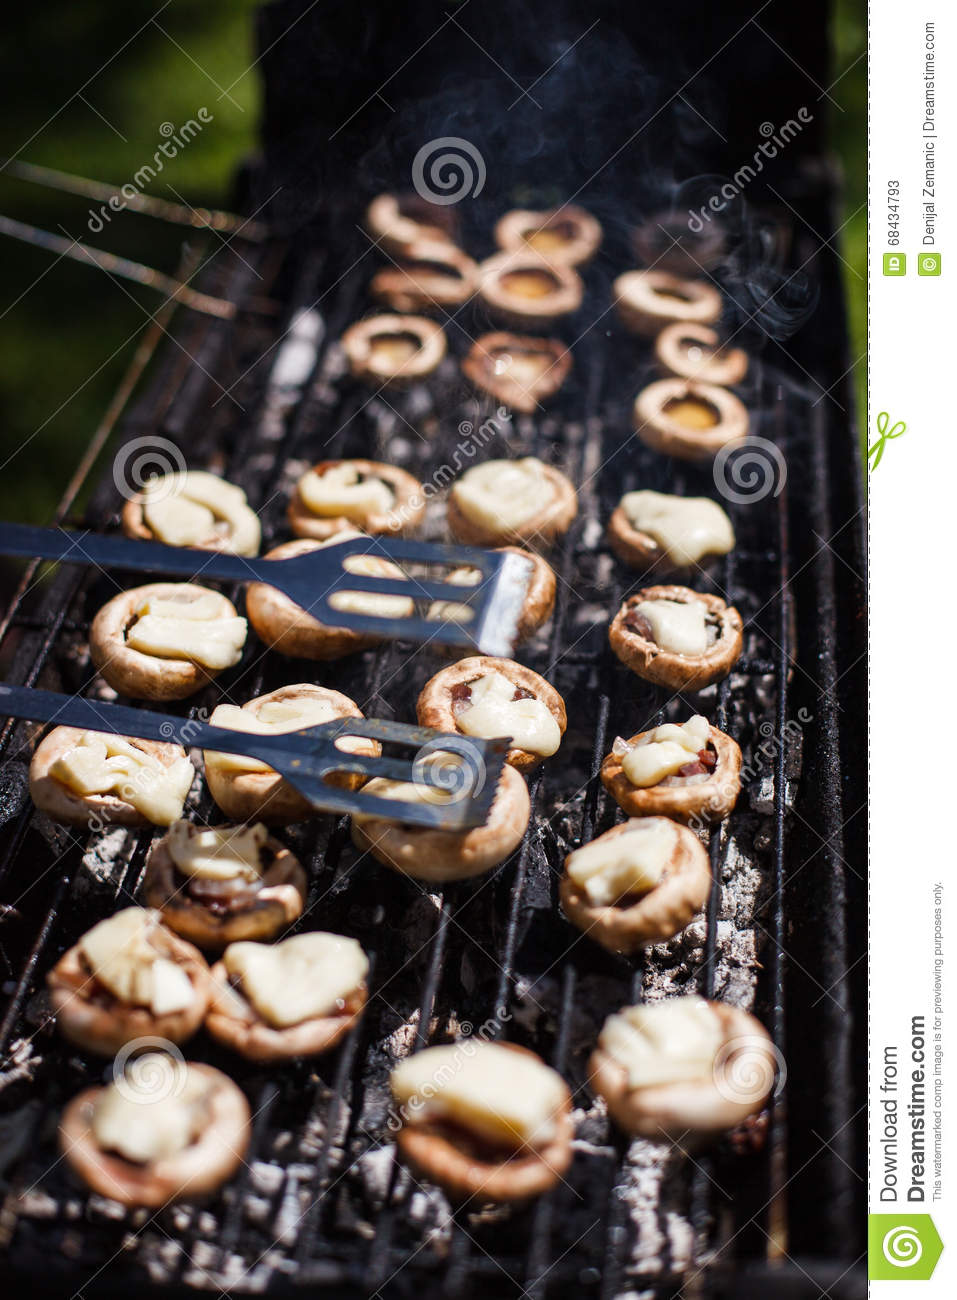 f626f7b9a0d4 White Mushrooms Grilled BBQ Steam Stock Image - Image of freshness ...